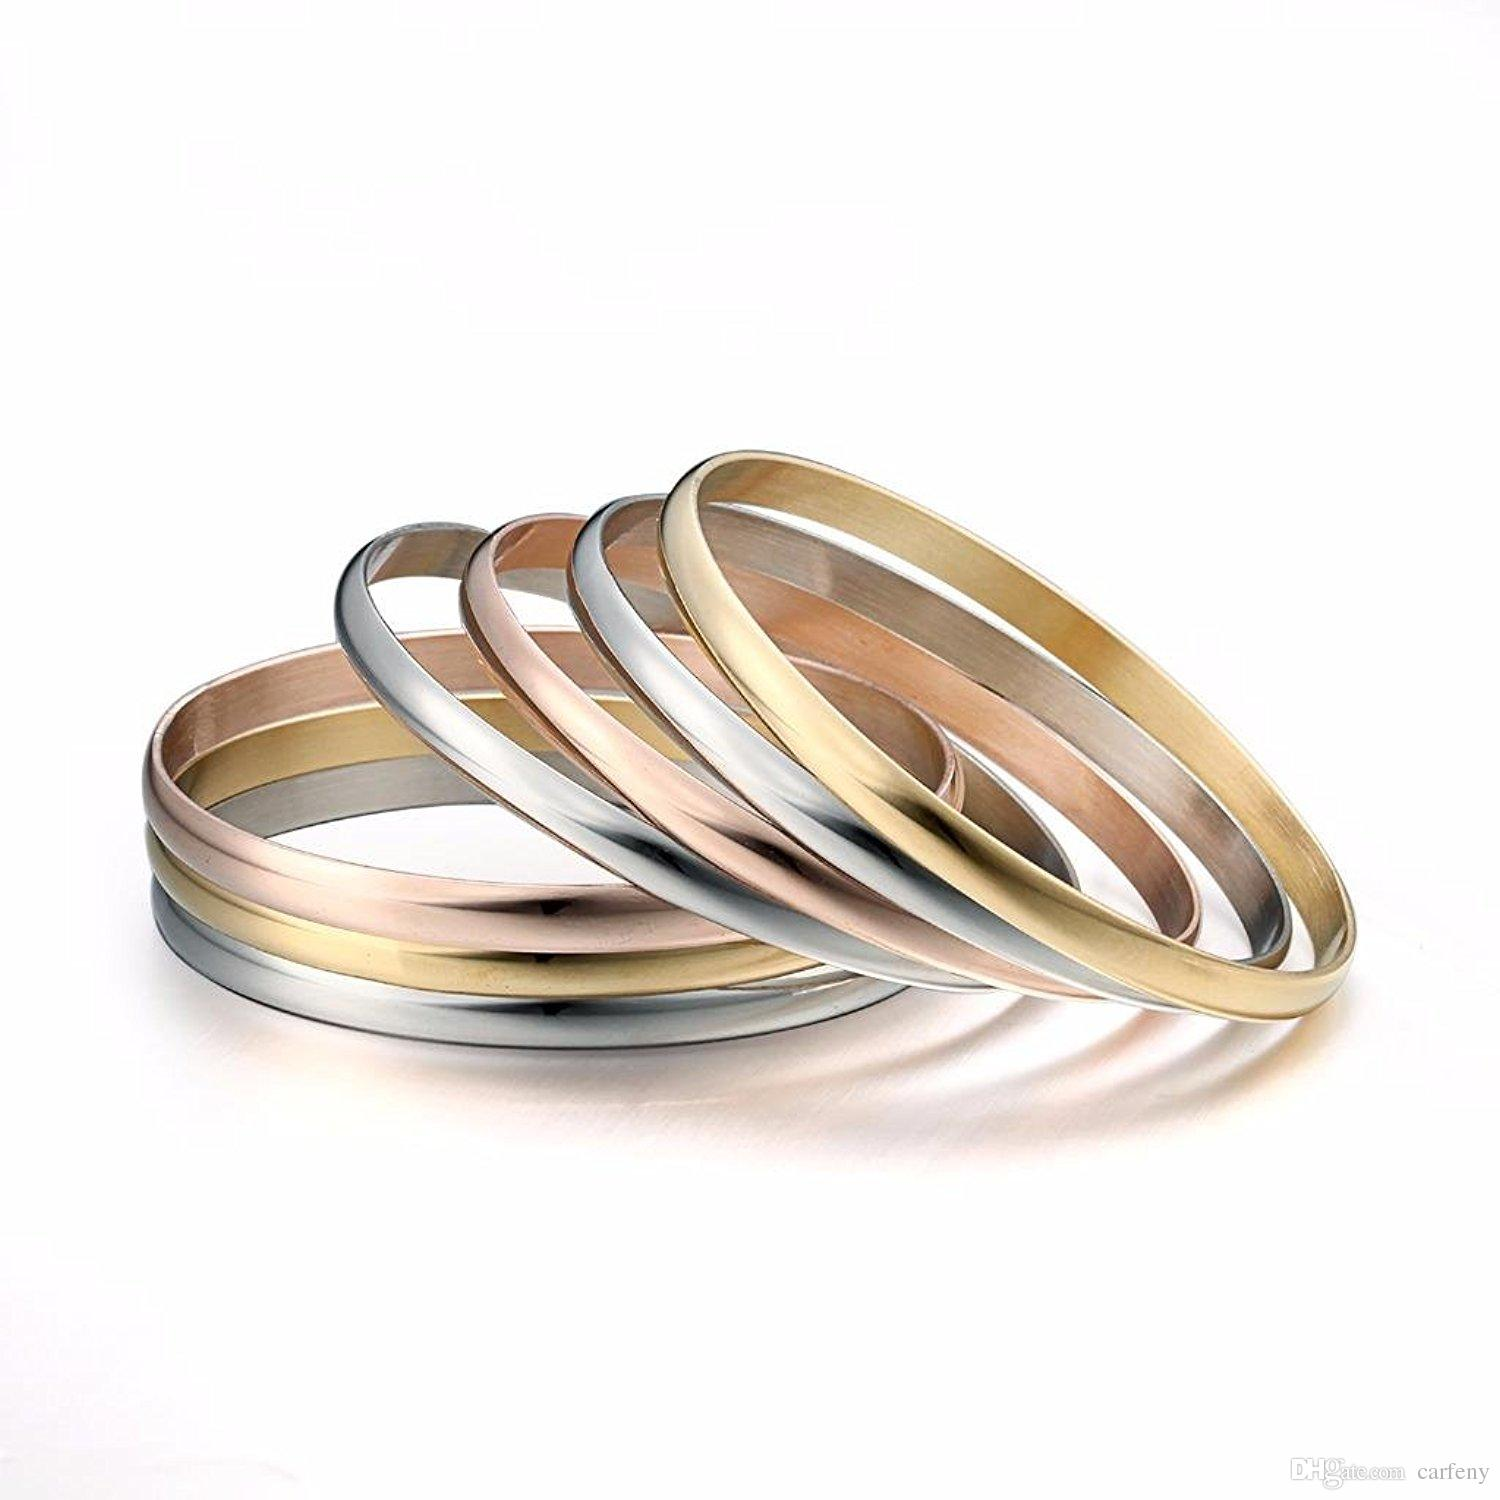 sterling scott bracelets silver kay bangles and bracelet bangle yellow basket gold cuff weave karat